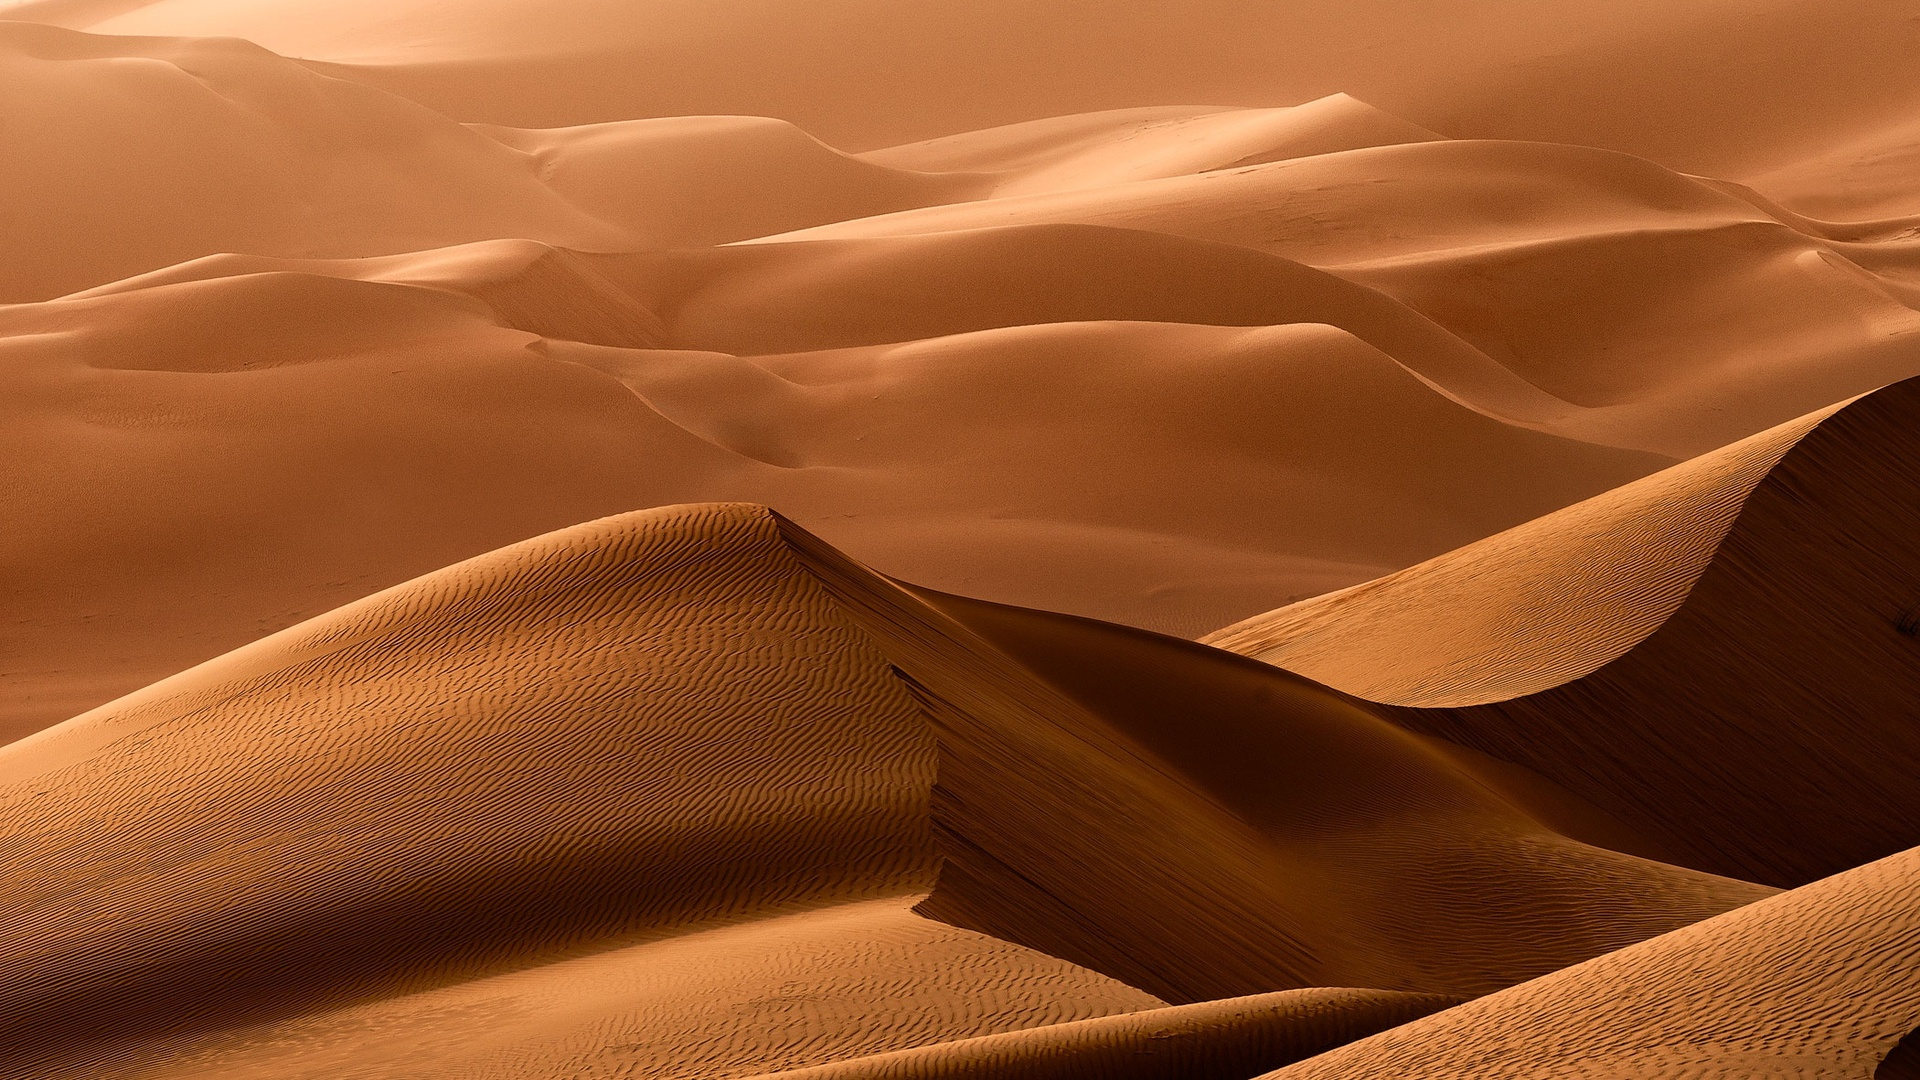 1920x1080 Desert Dune Landscape Laptop Full Hd 1080p Hd 4k Wallpapers Images Backgrounds Photos And Pictures